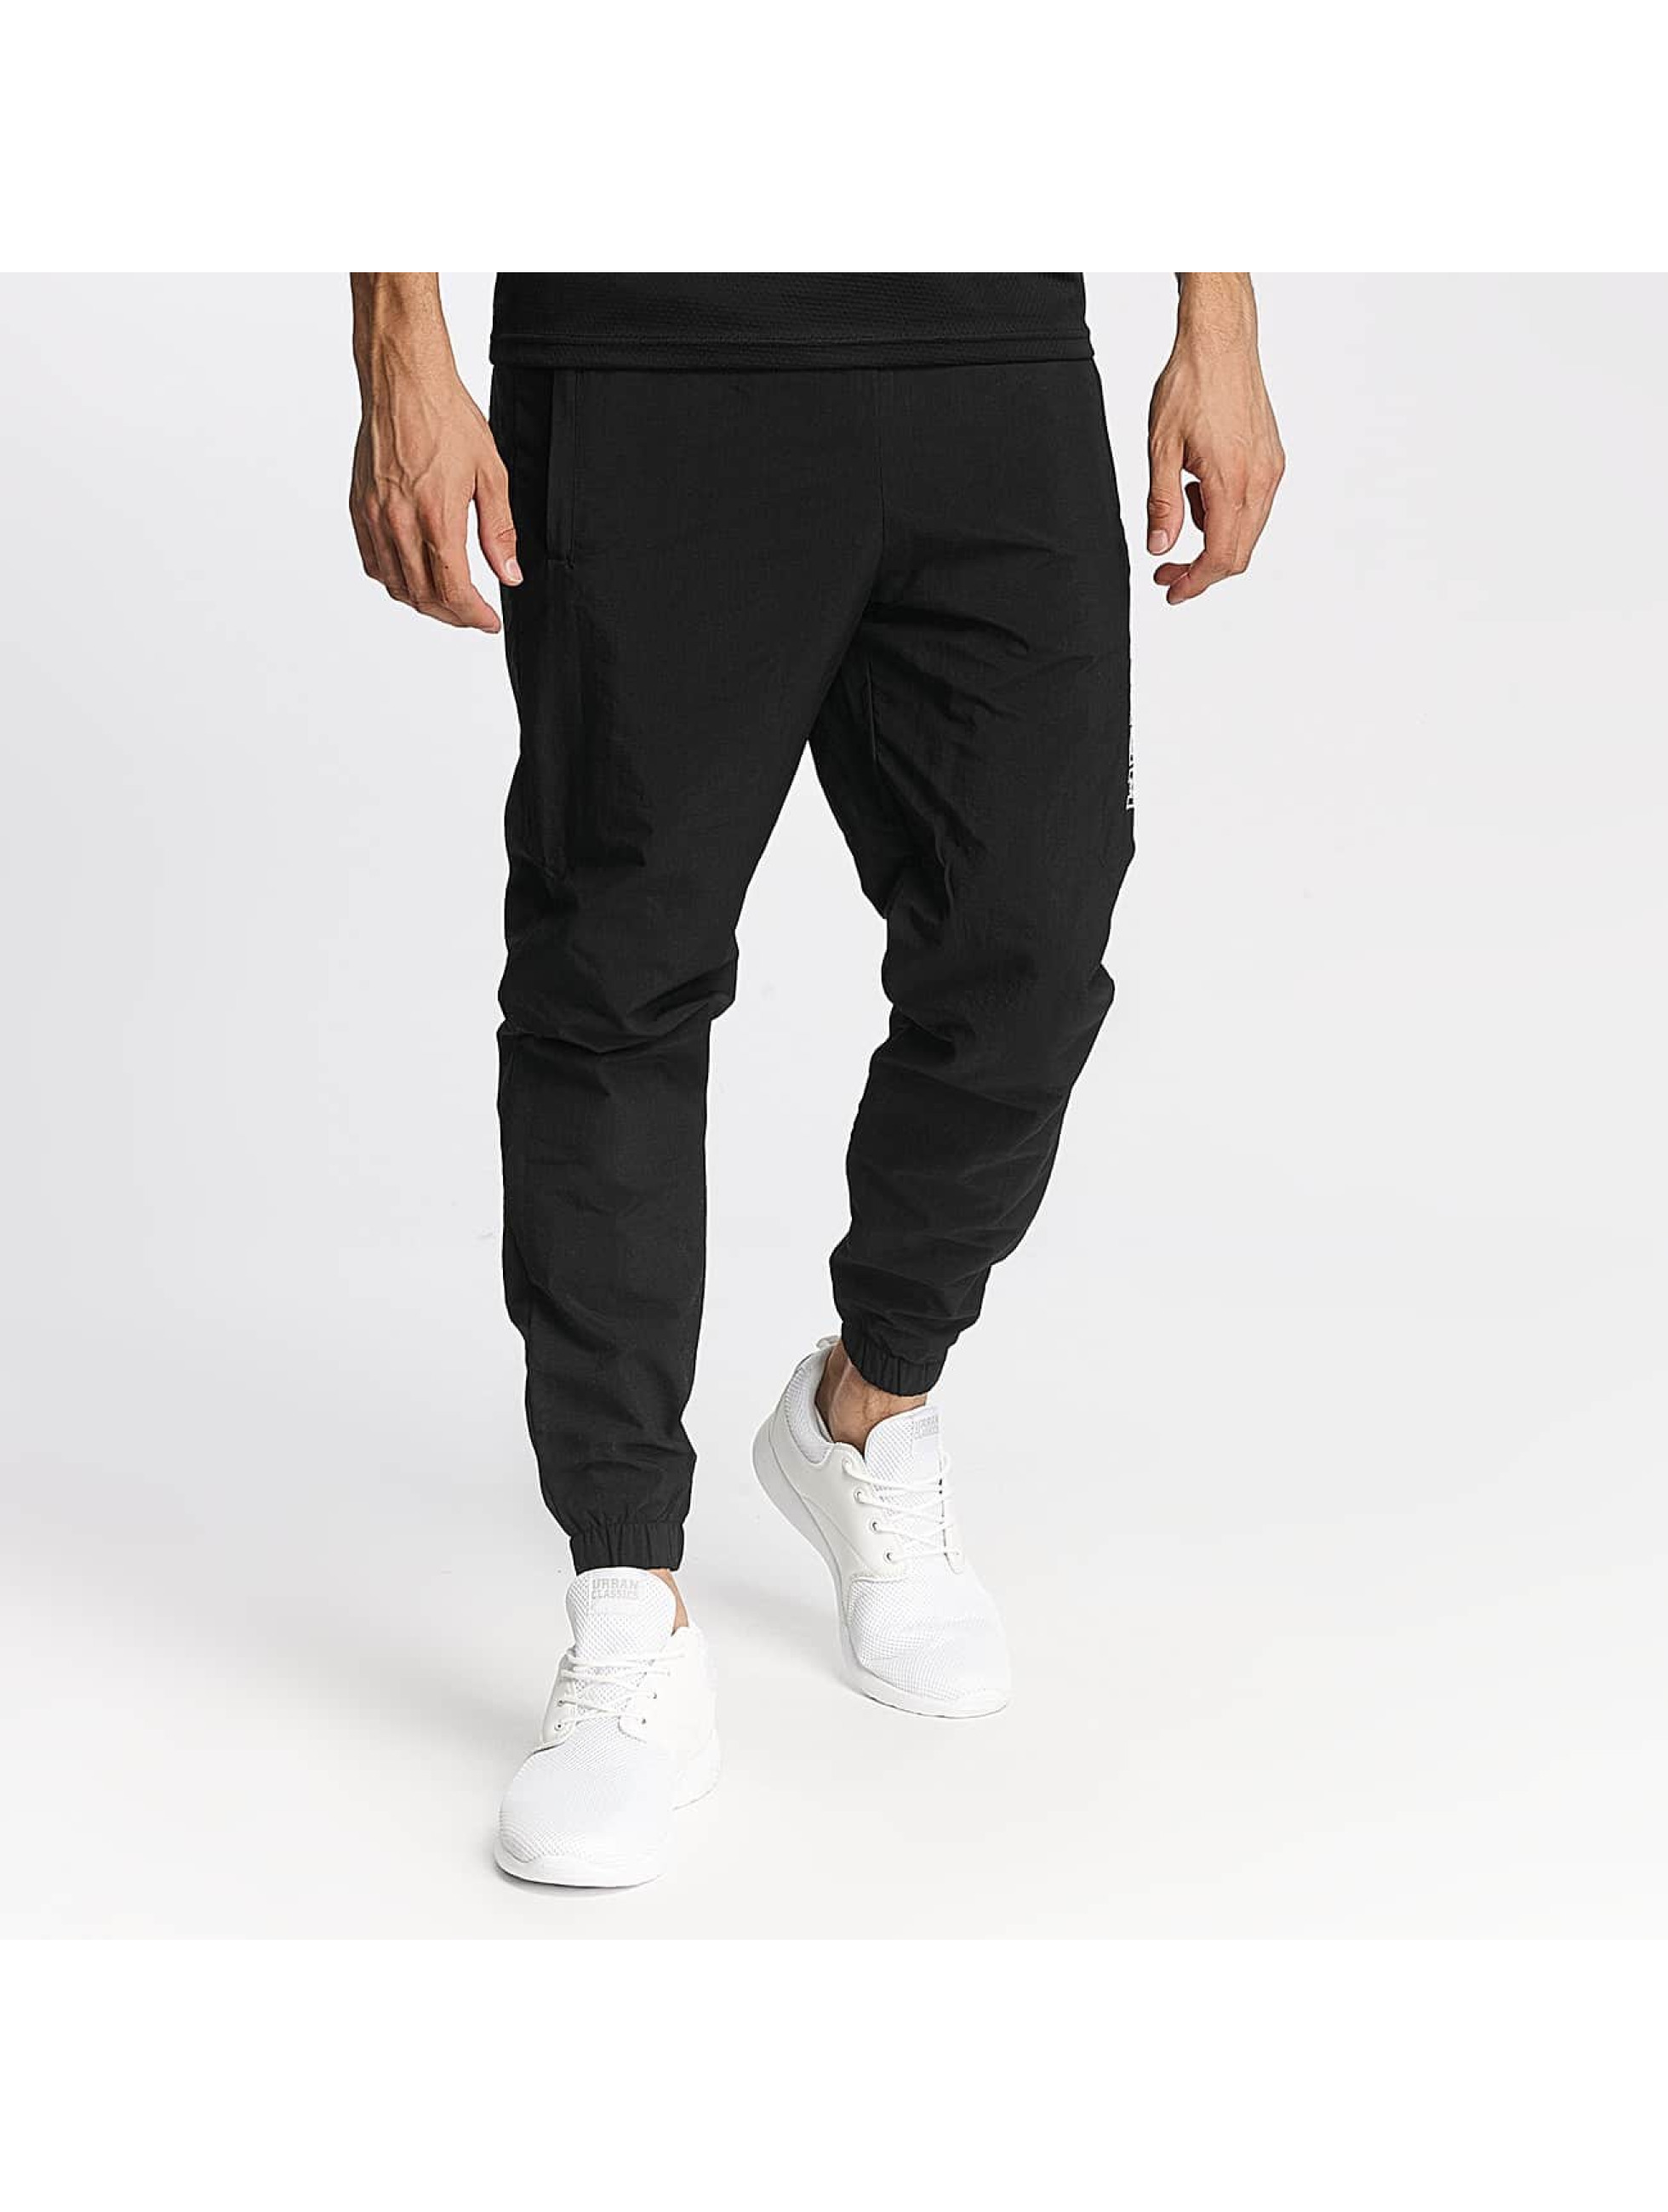 Wrung Division Sweat Pant Jam black